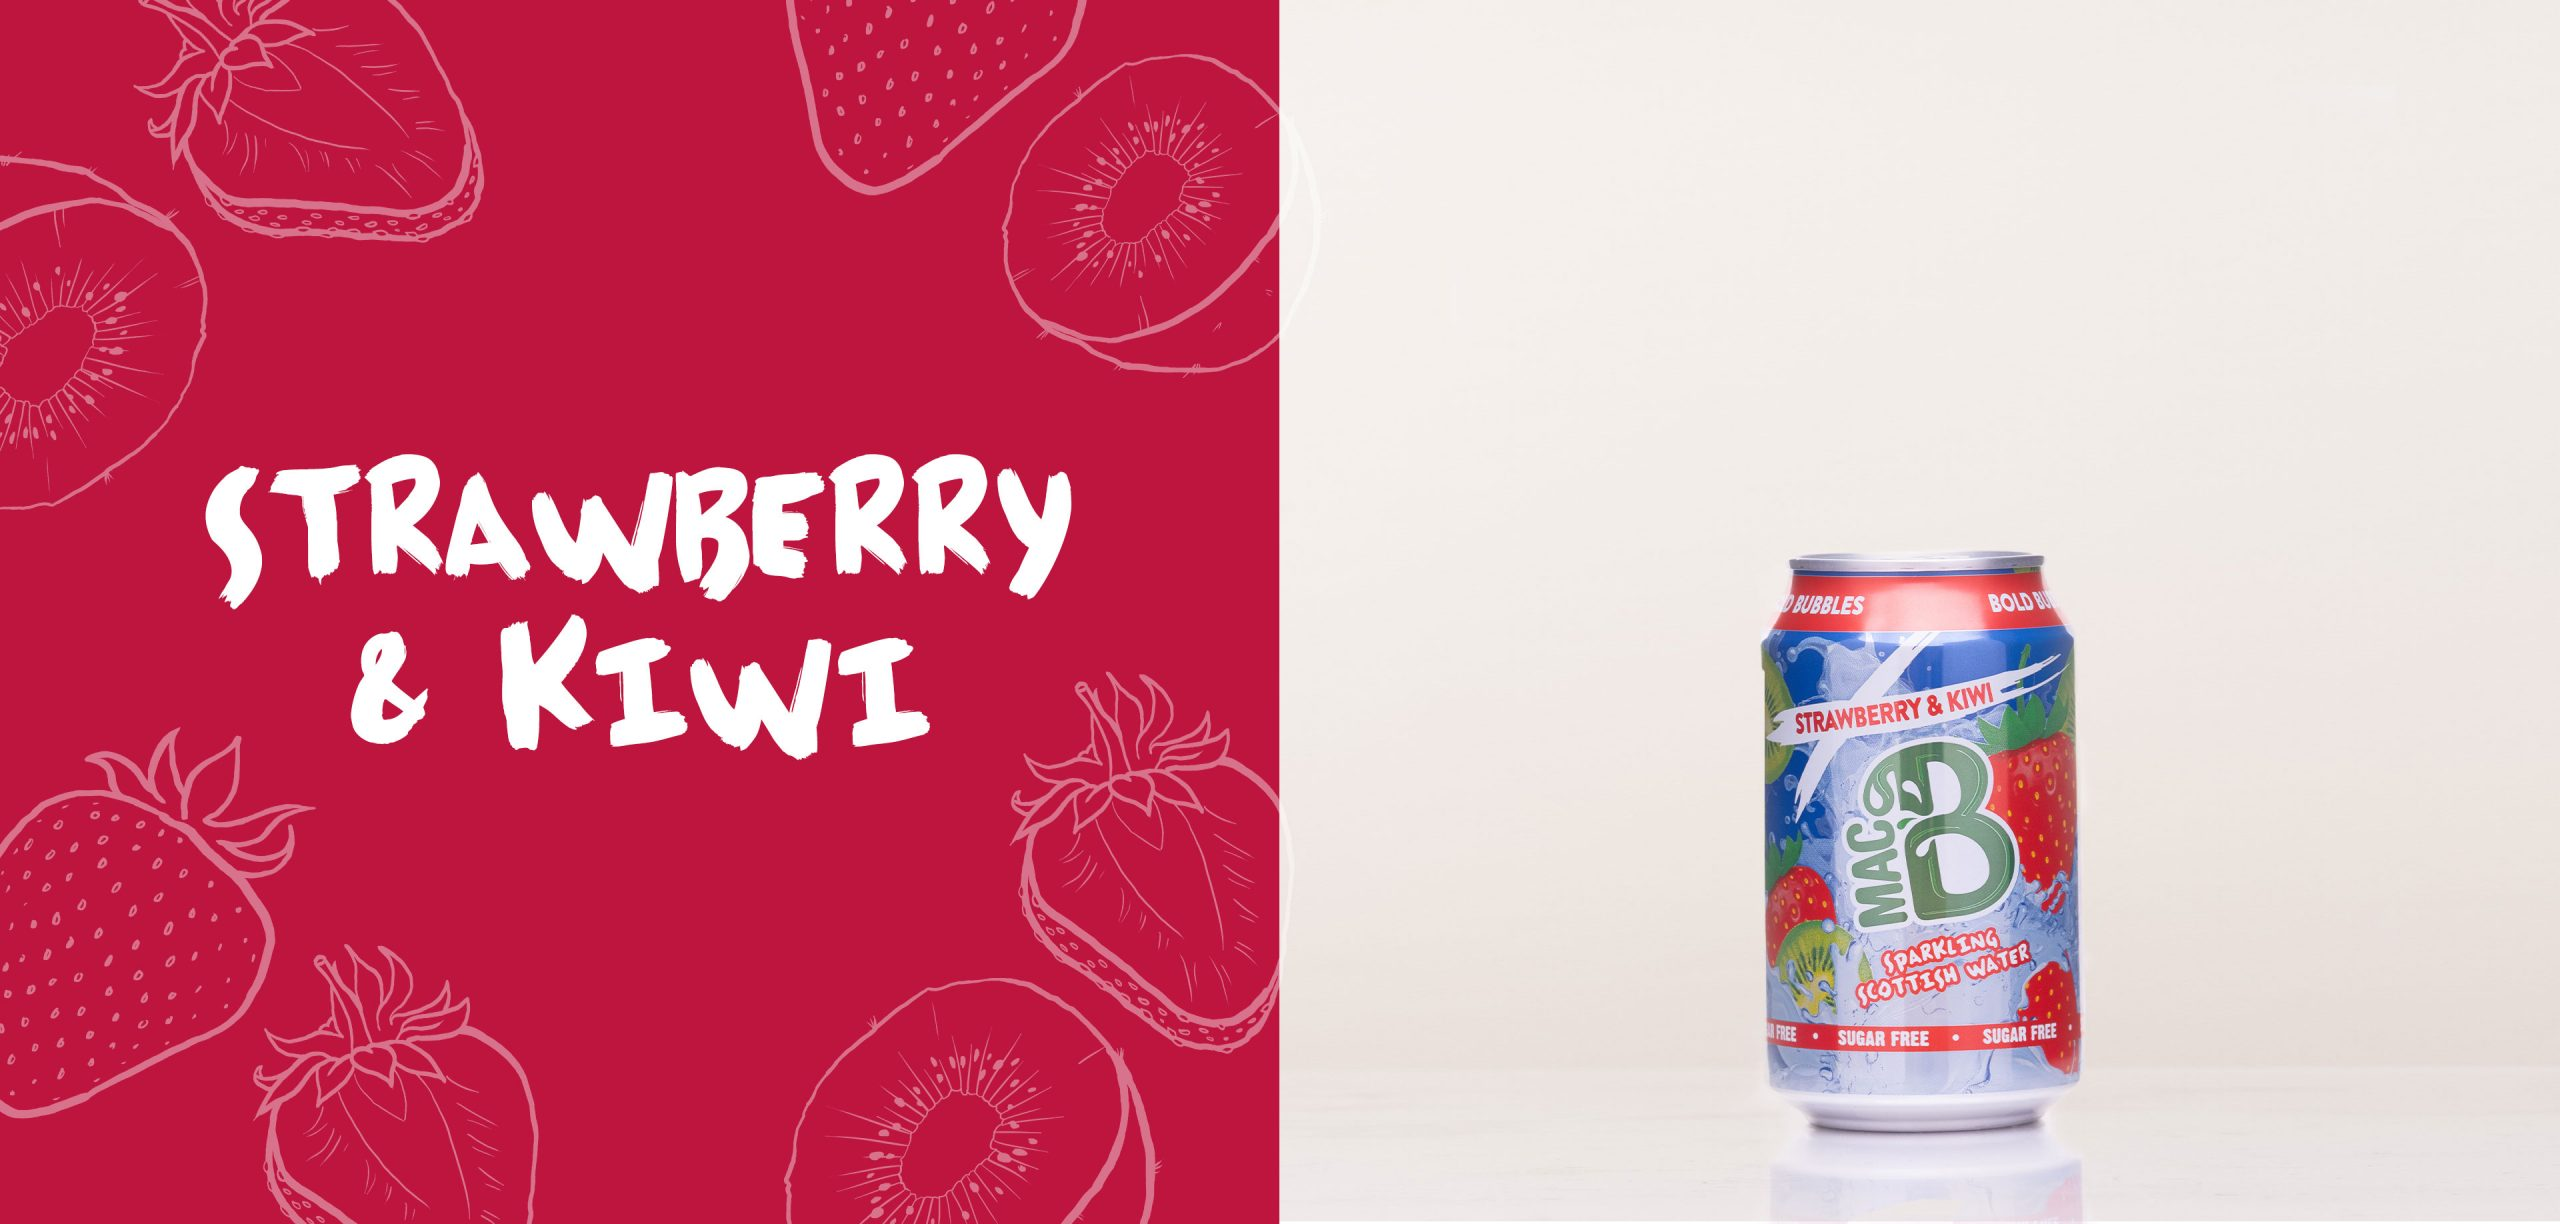 Strawberry and Kiwi flavoured Macb sparkling flavoured water in a 330ml can